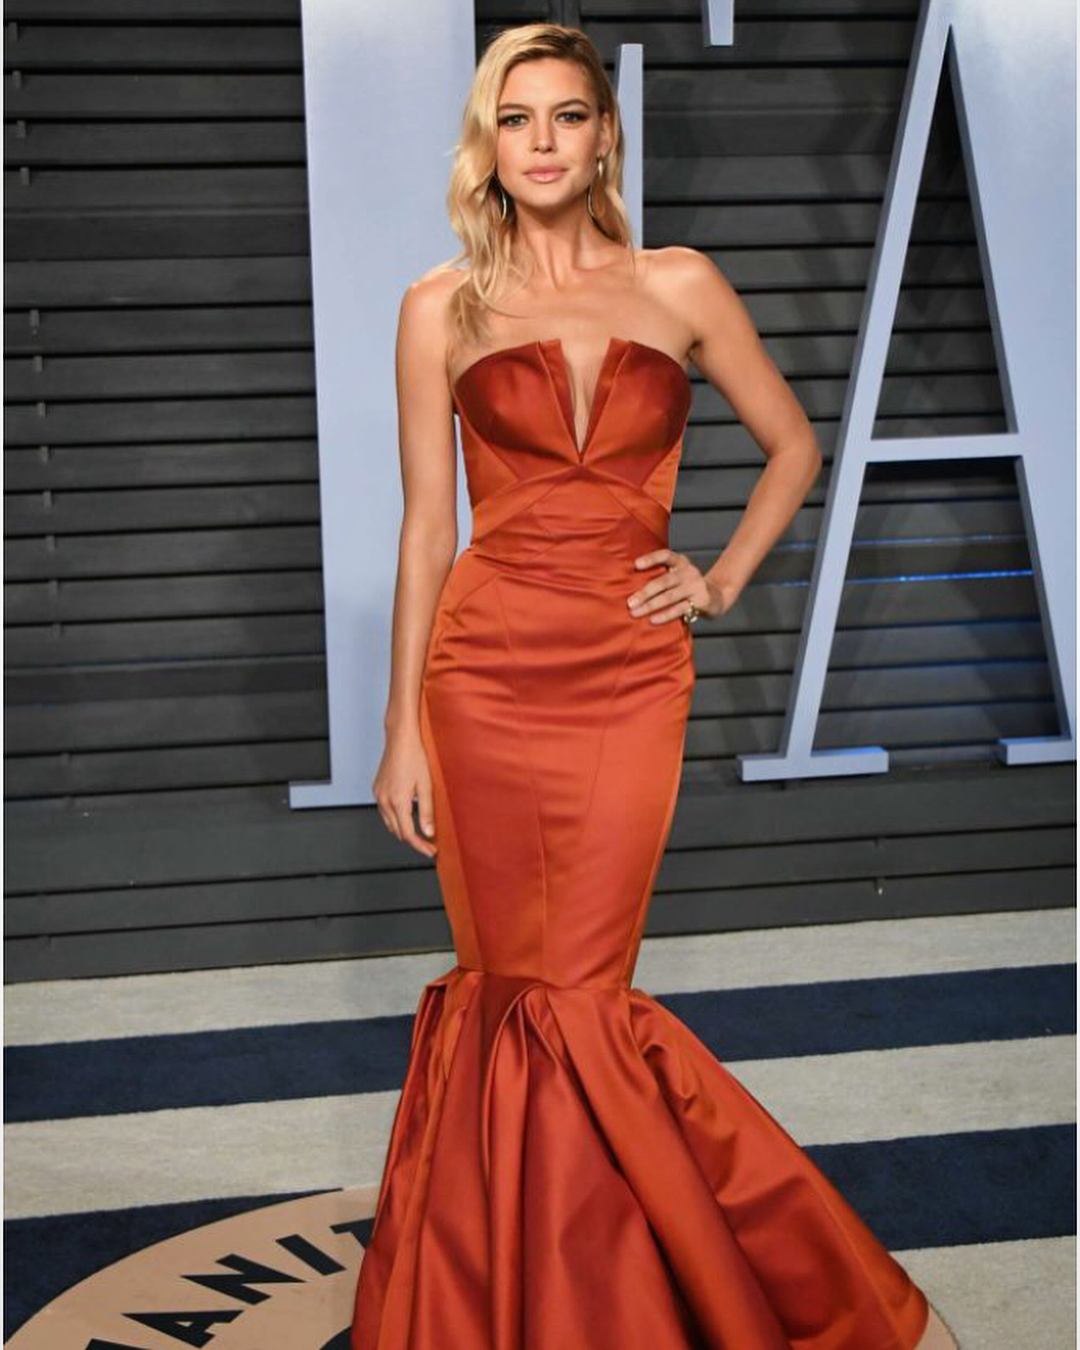 Kelly Rohrbach Wearing Strapless V-Cut Maxi Gown At Vanity Fair Event 2019